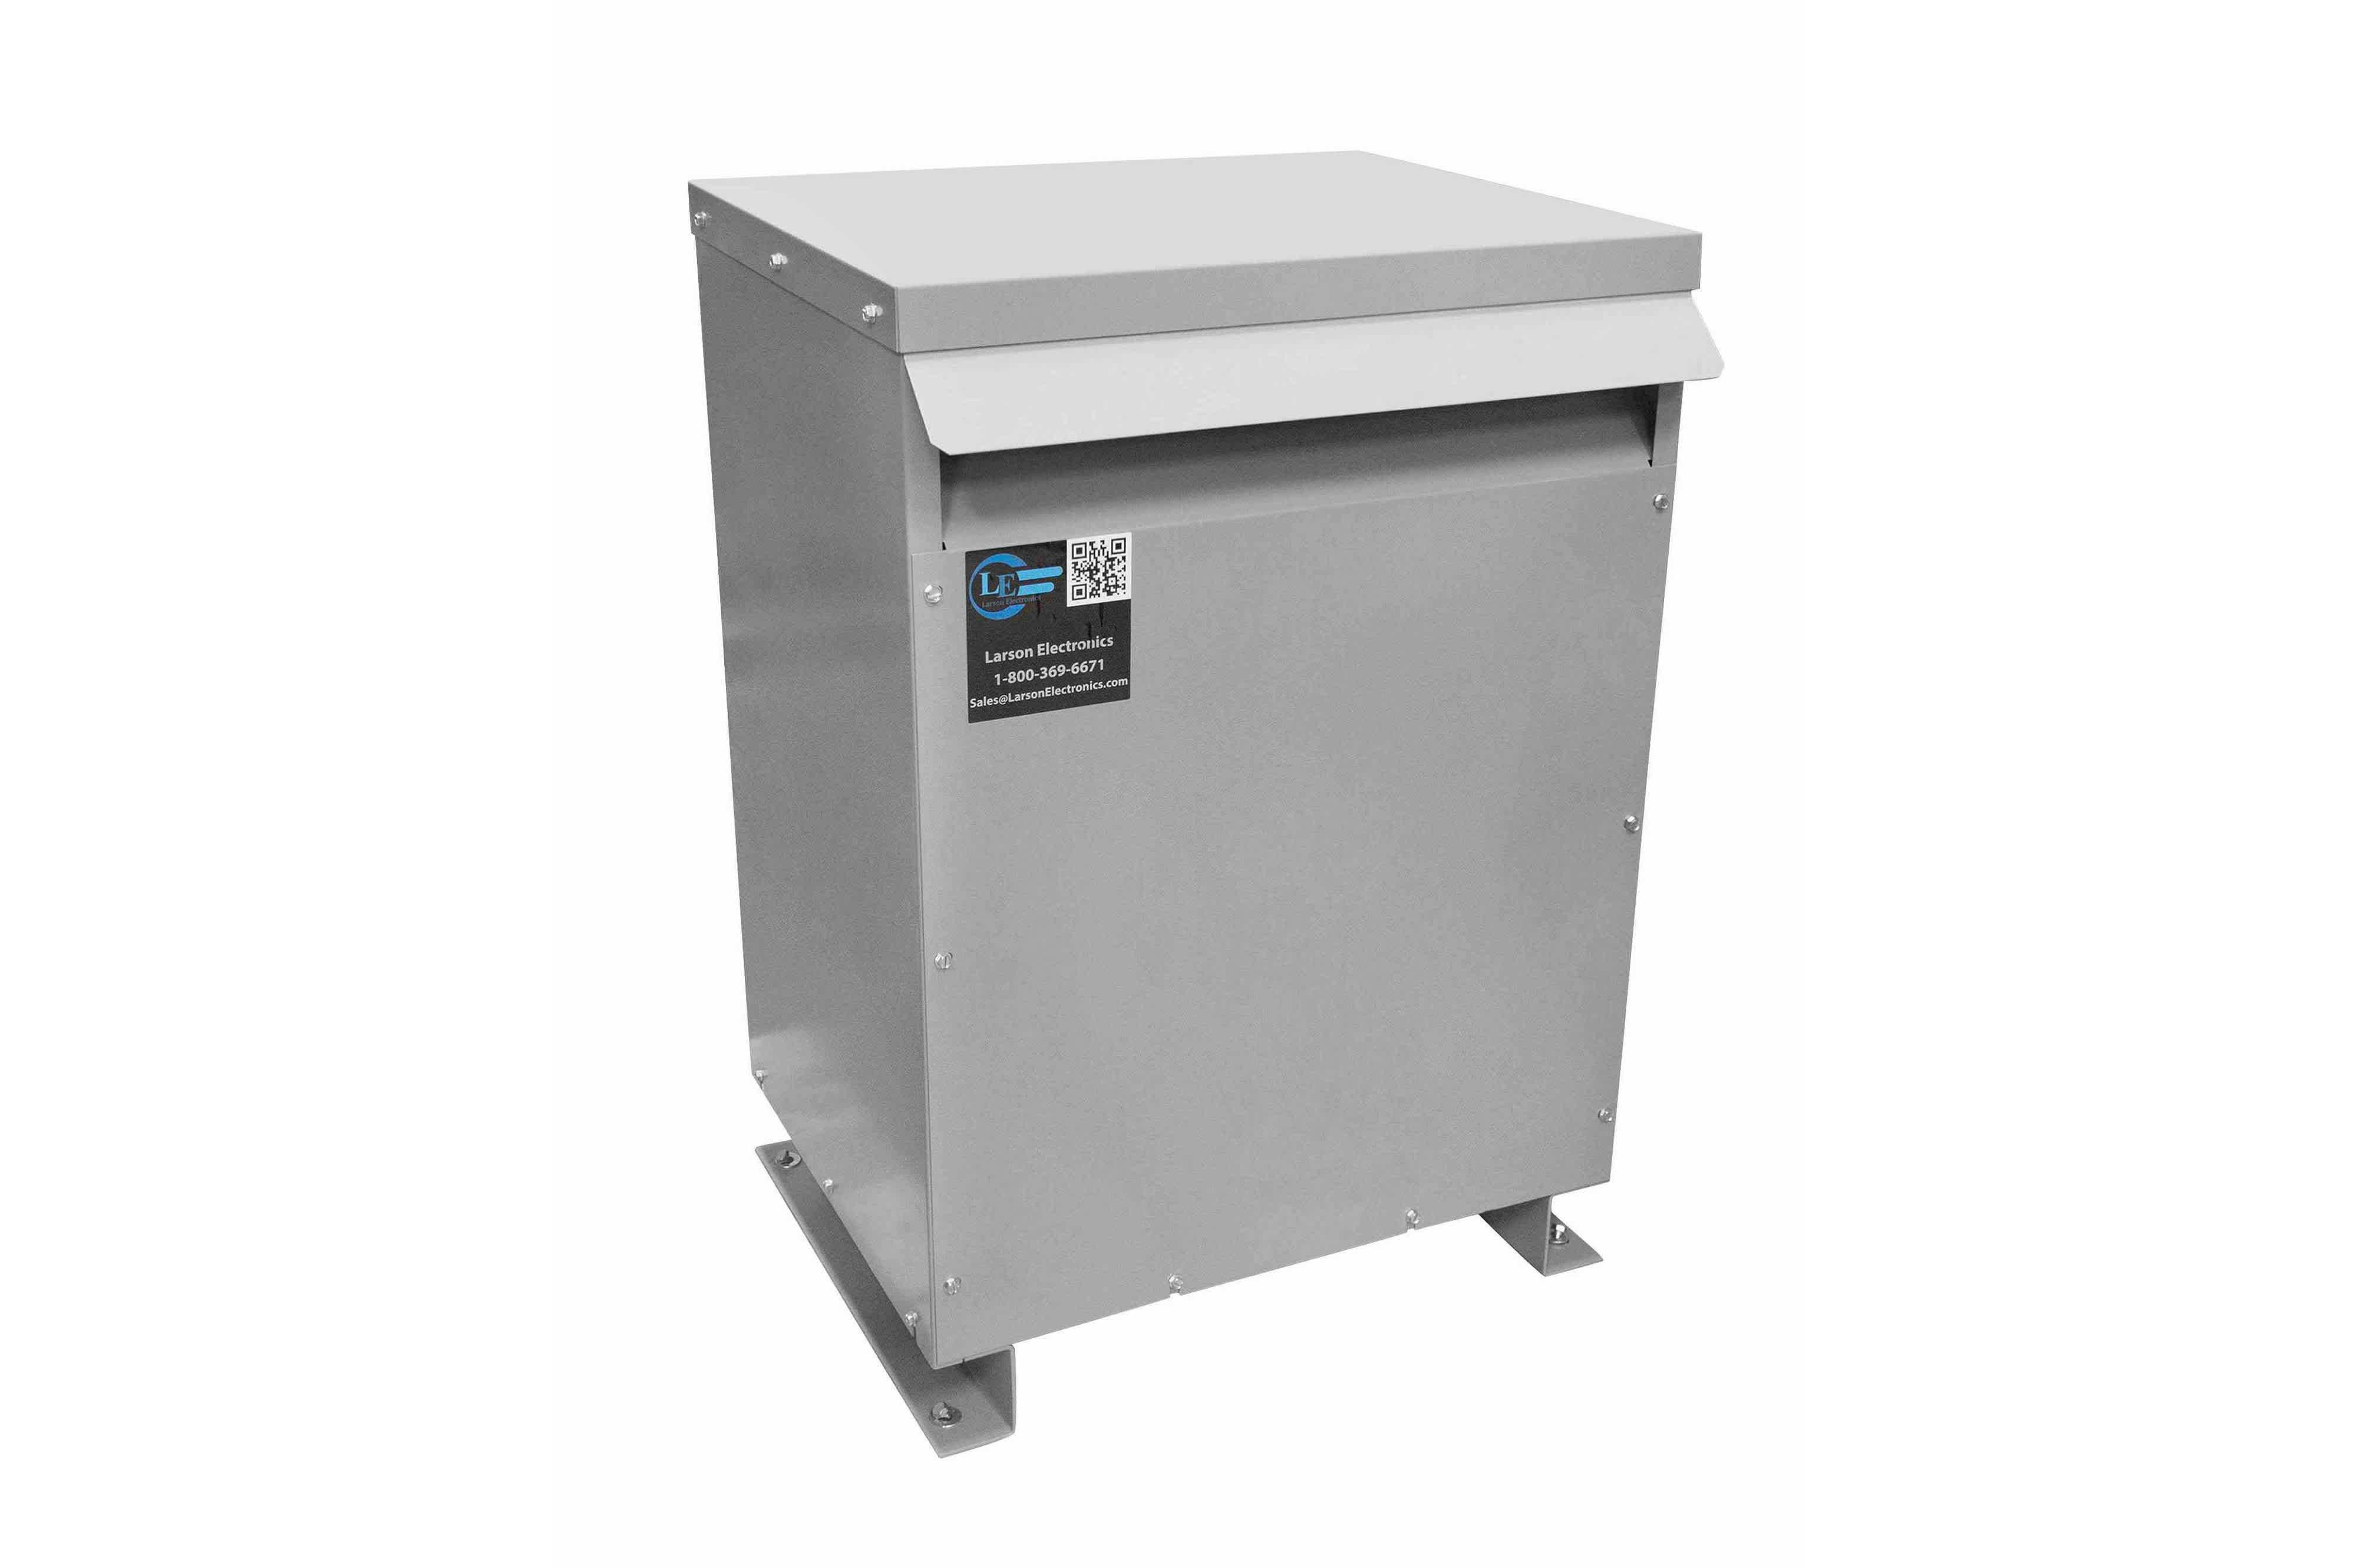 250 kVA 3PH Isolation Transformer, 600V Wye Primary, 400V Delta Secondary, N3R, Ventilated, 60 Hz